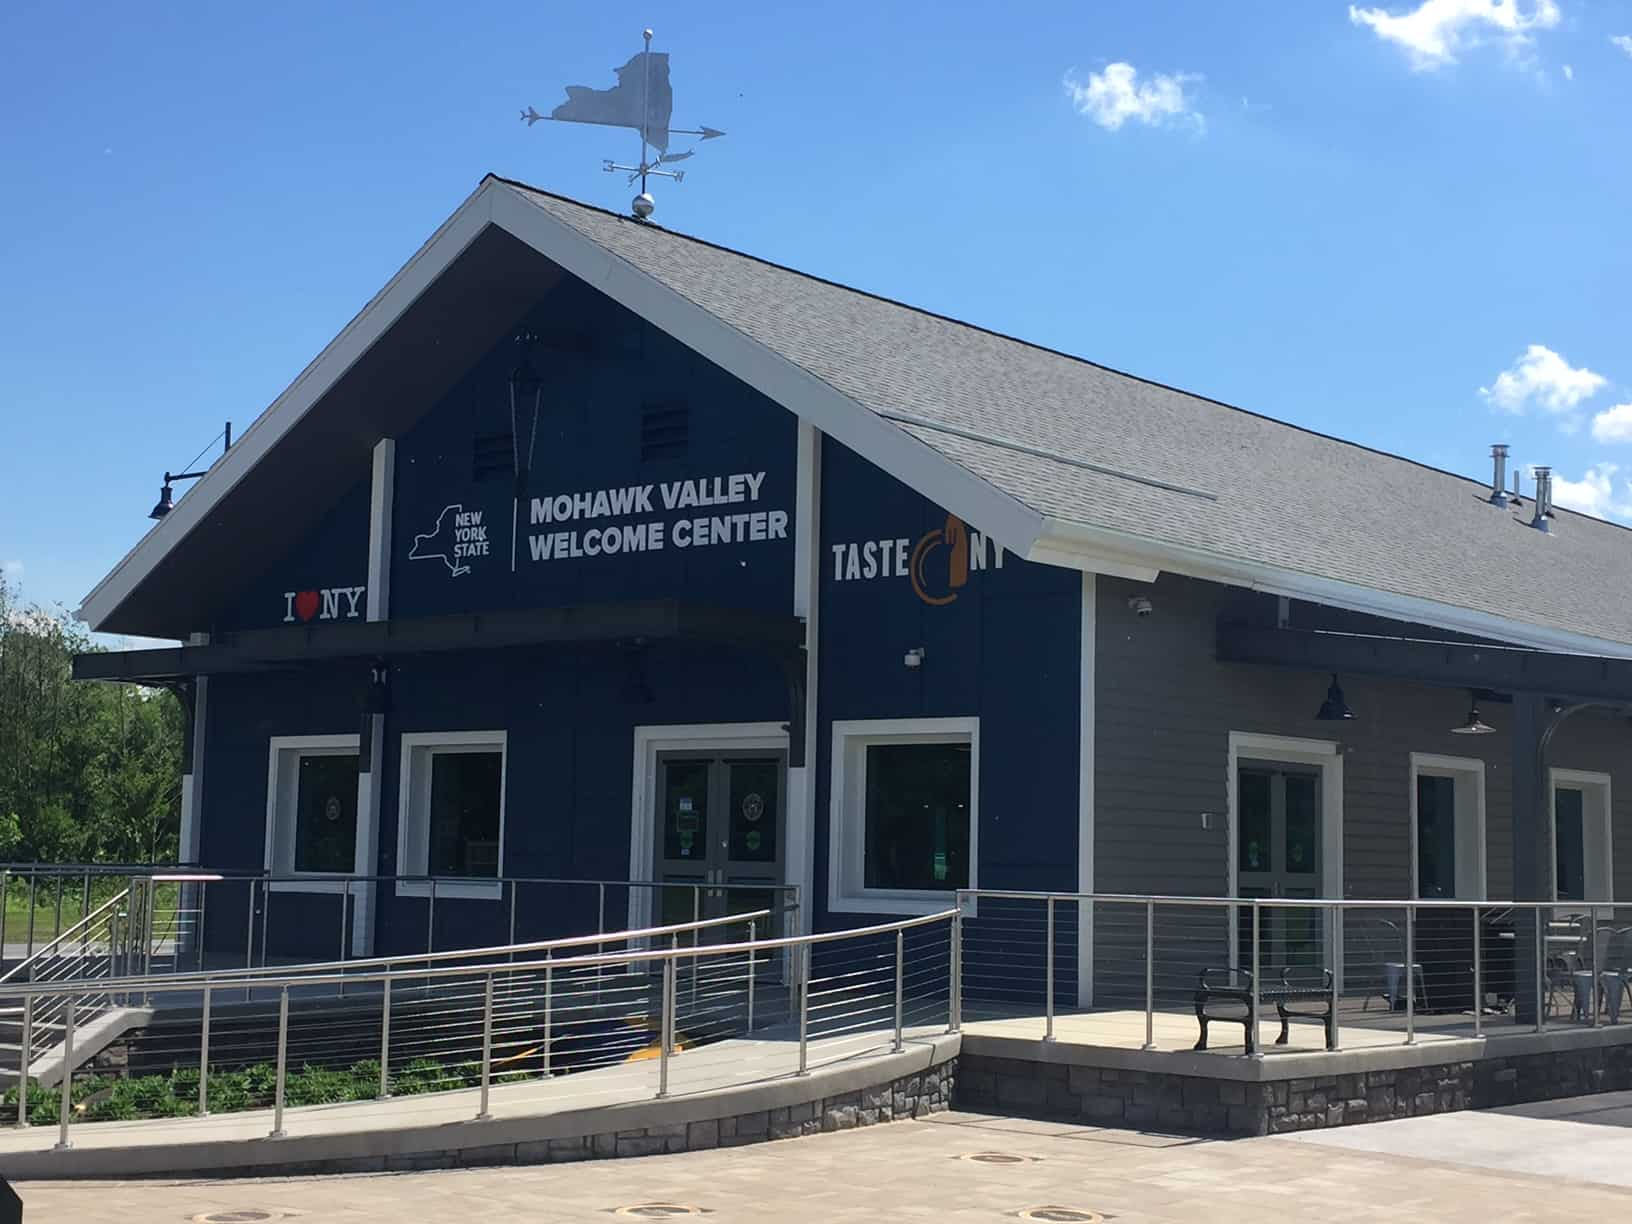 The brand new Mohawk Valley Welcome Center at Lock 13